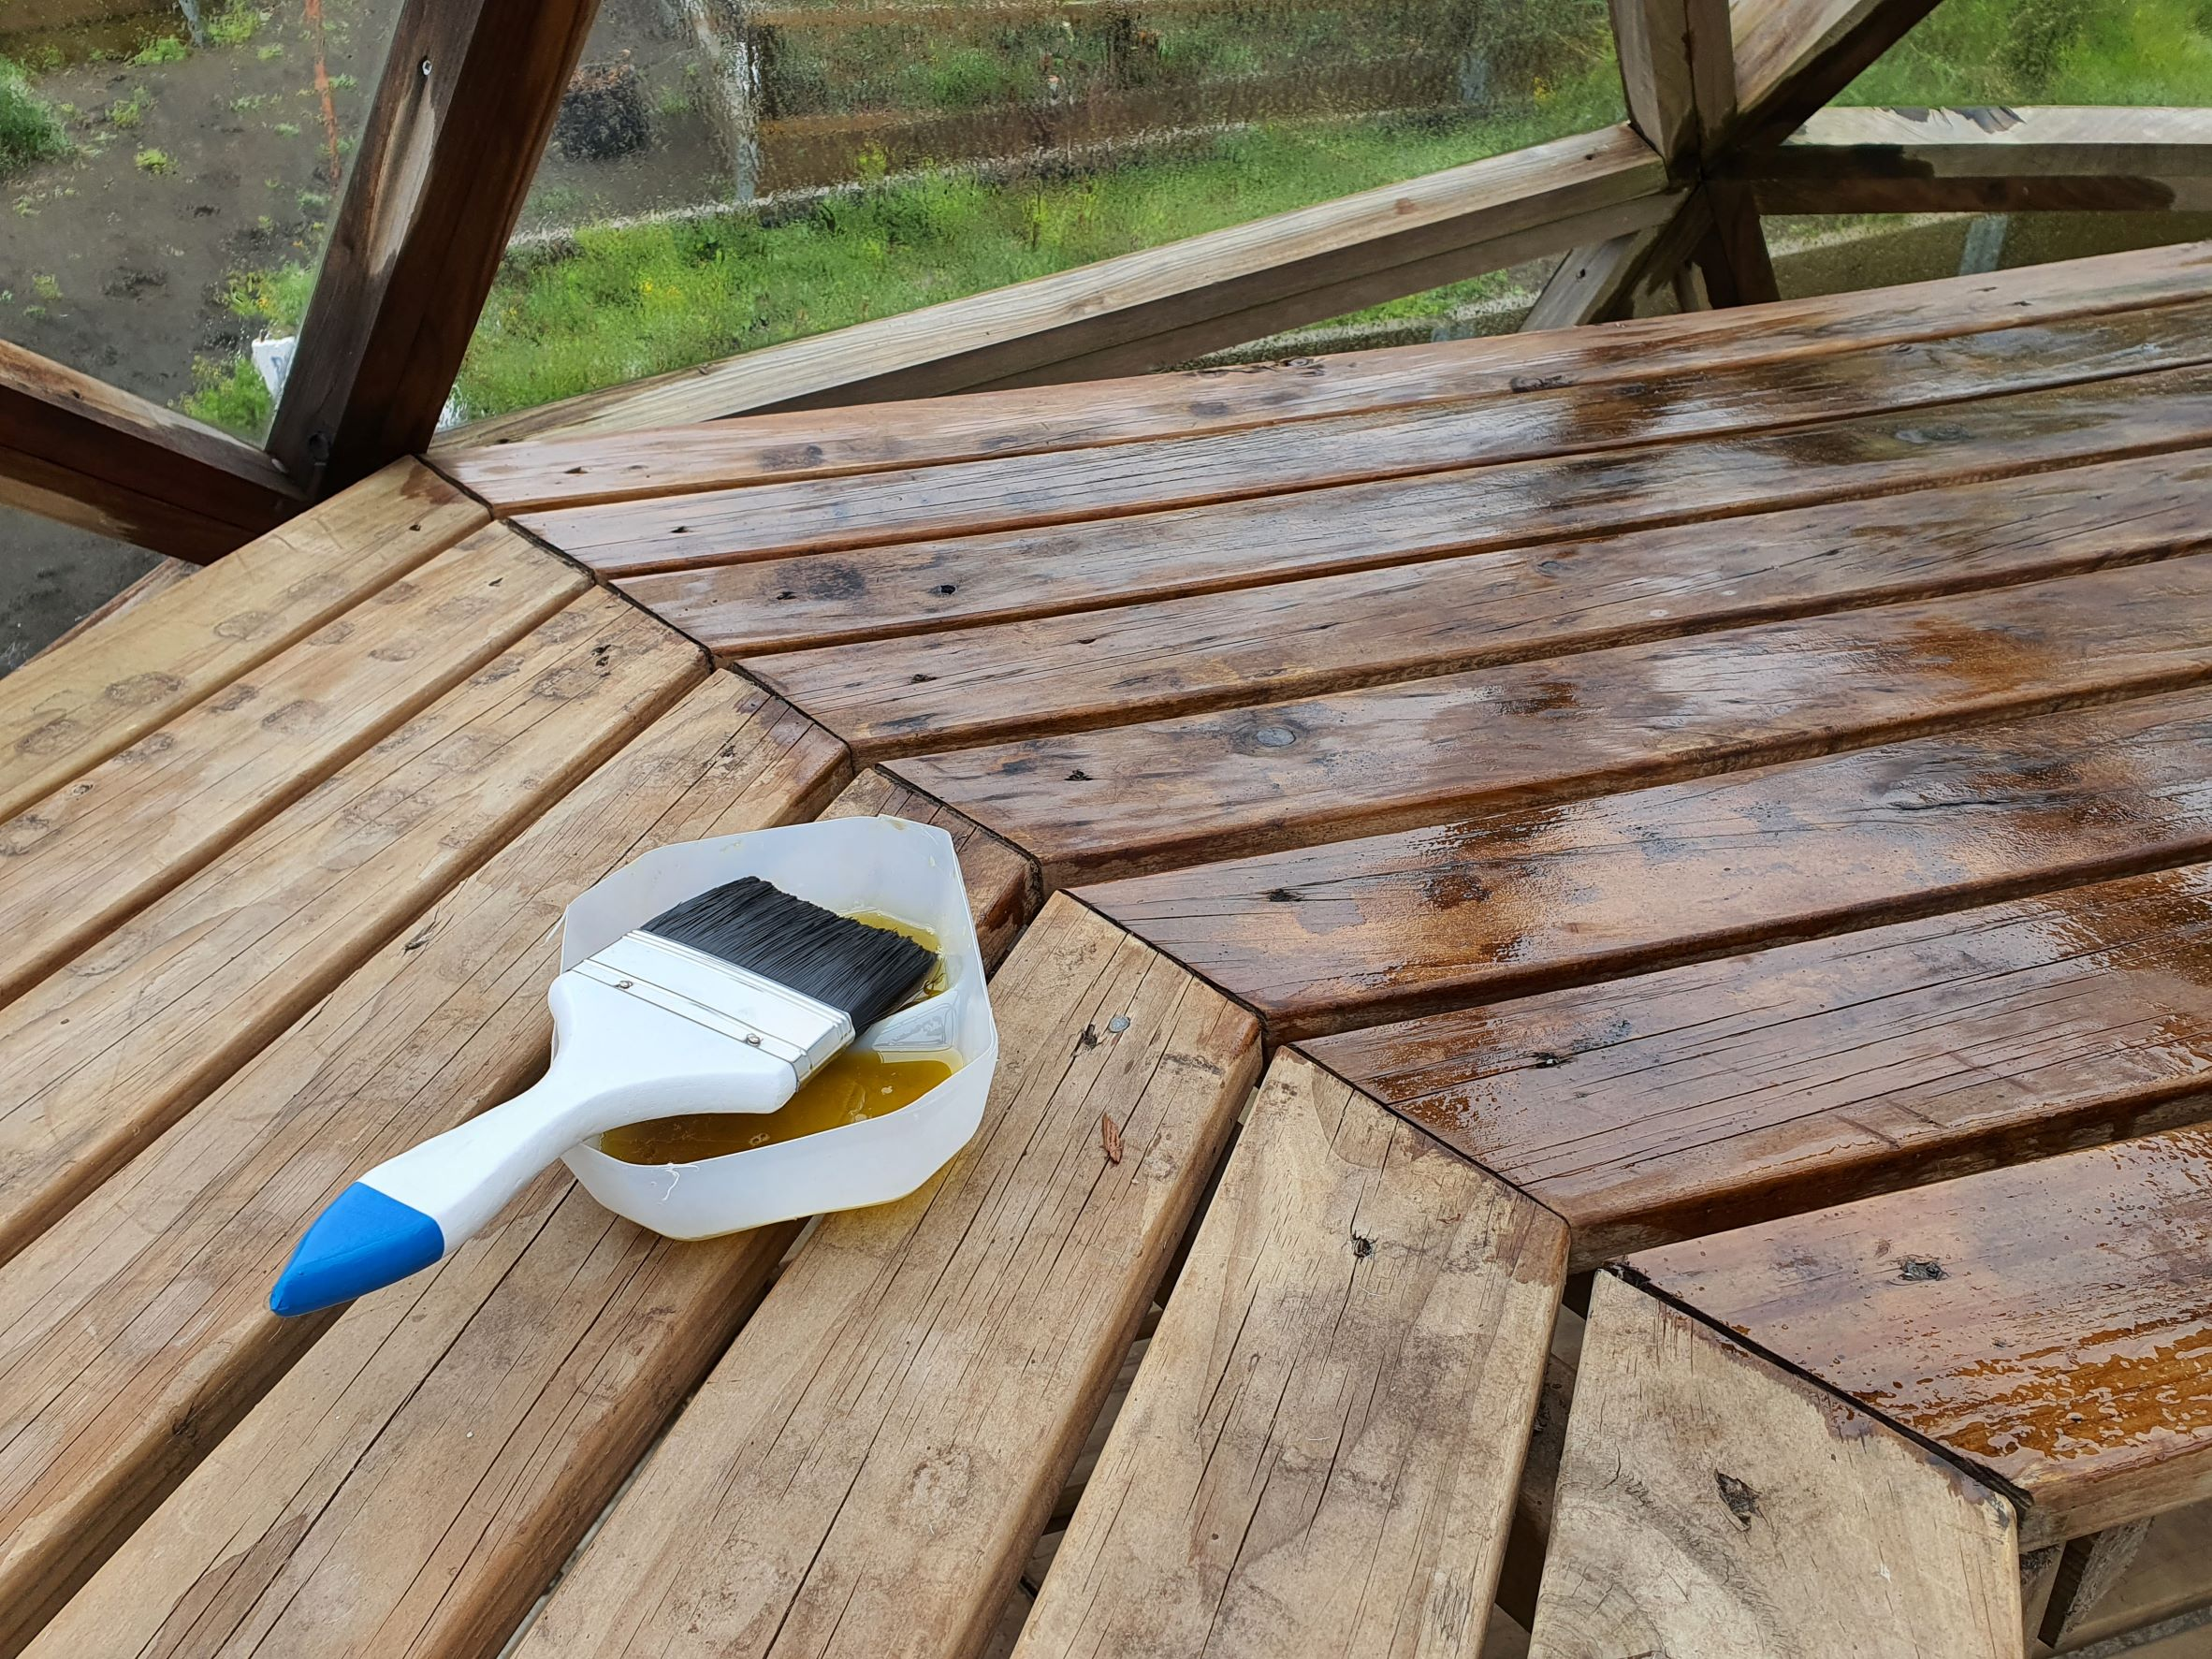 Linseed oil on greenhouse shelves